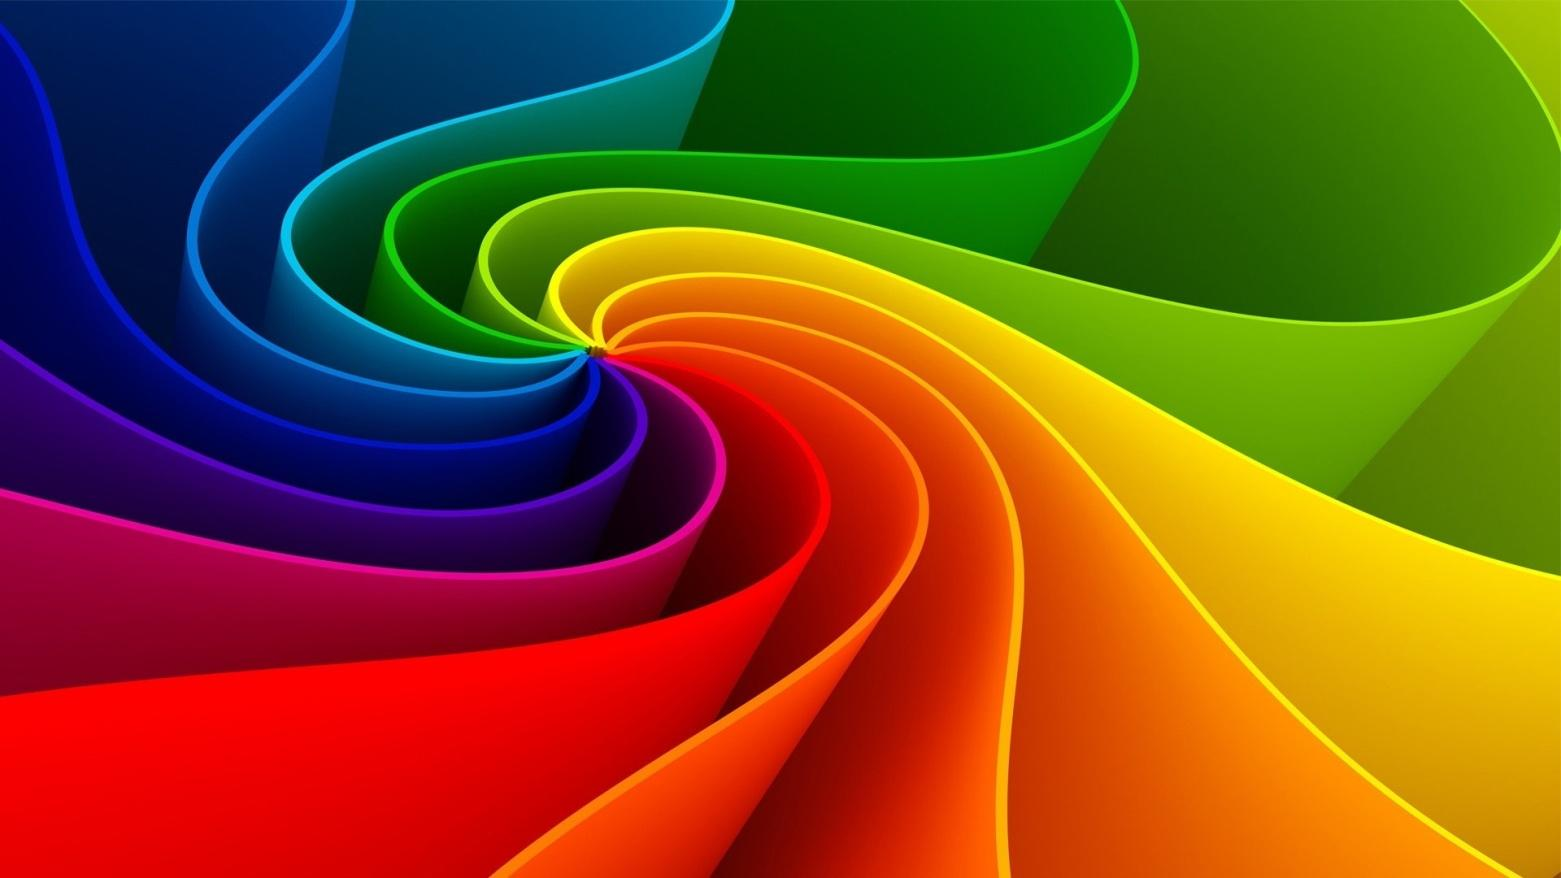 C:\Users\E\Desktop\Abstract-Rainbow-Wallpapers.jpg